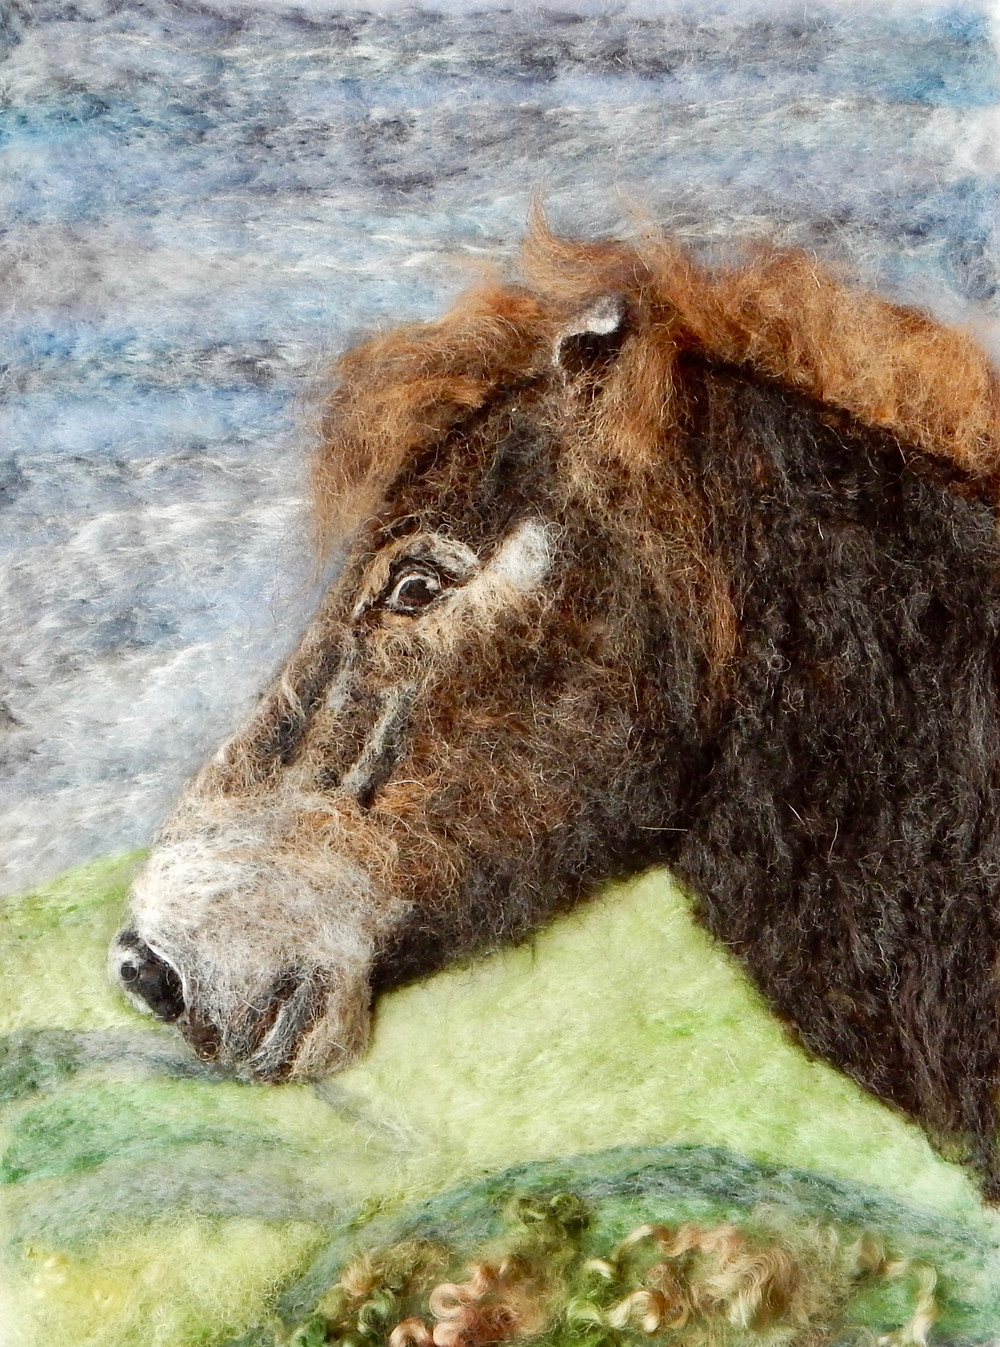 Exmoor pony portrait from a photograph taken in the Exmoor National Park